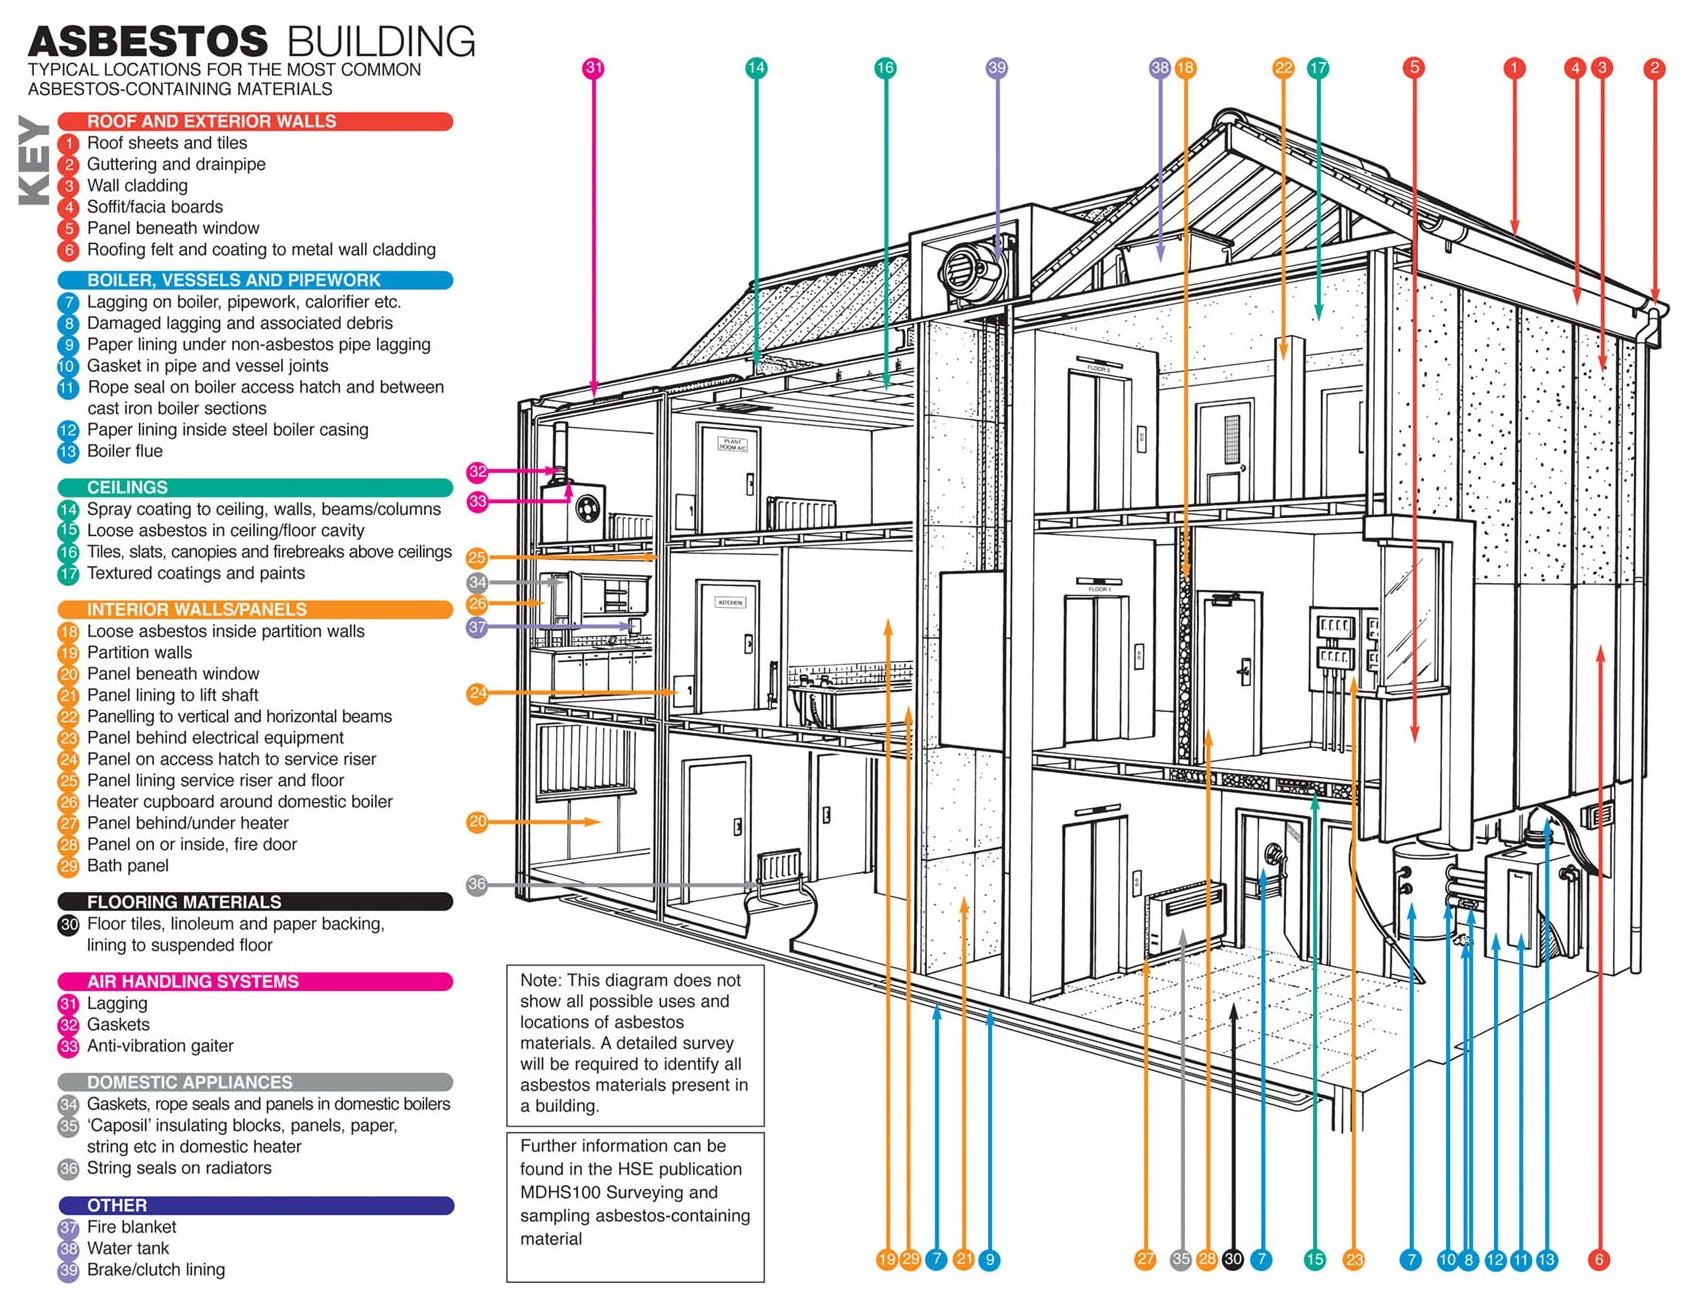 Asbestos Surveys - Management, R&D and Mortgage